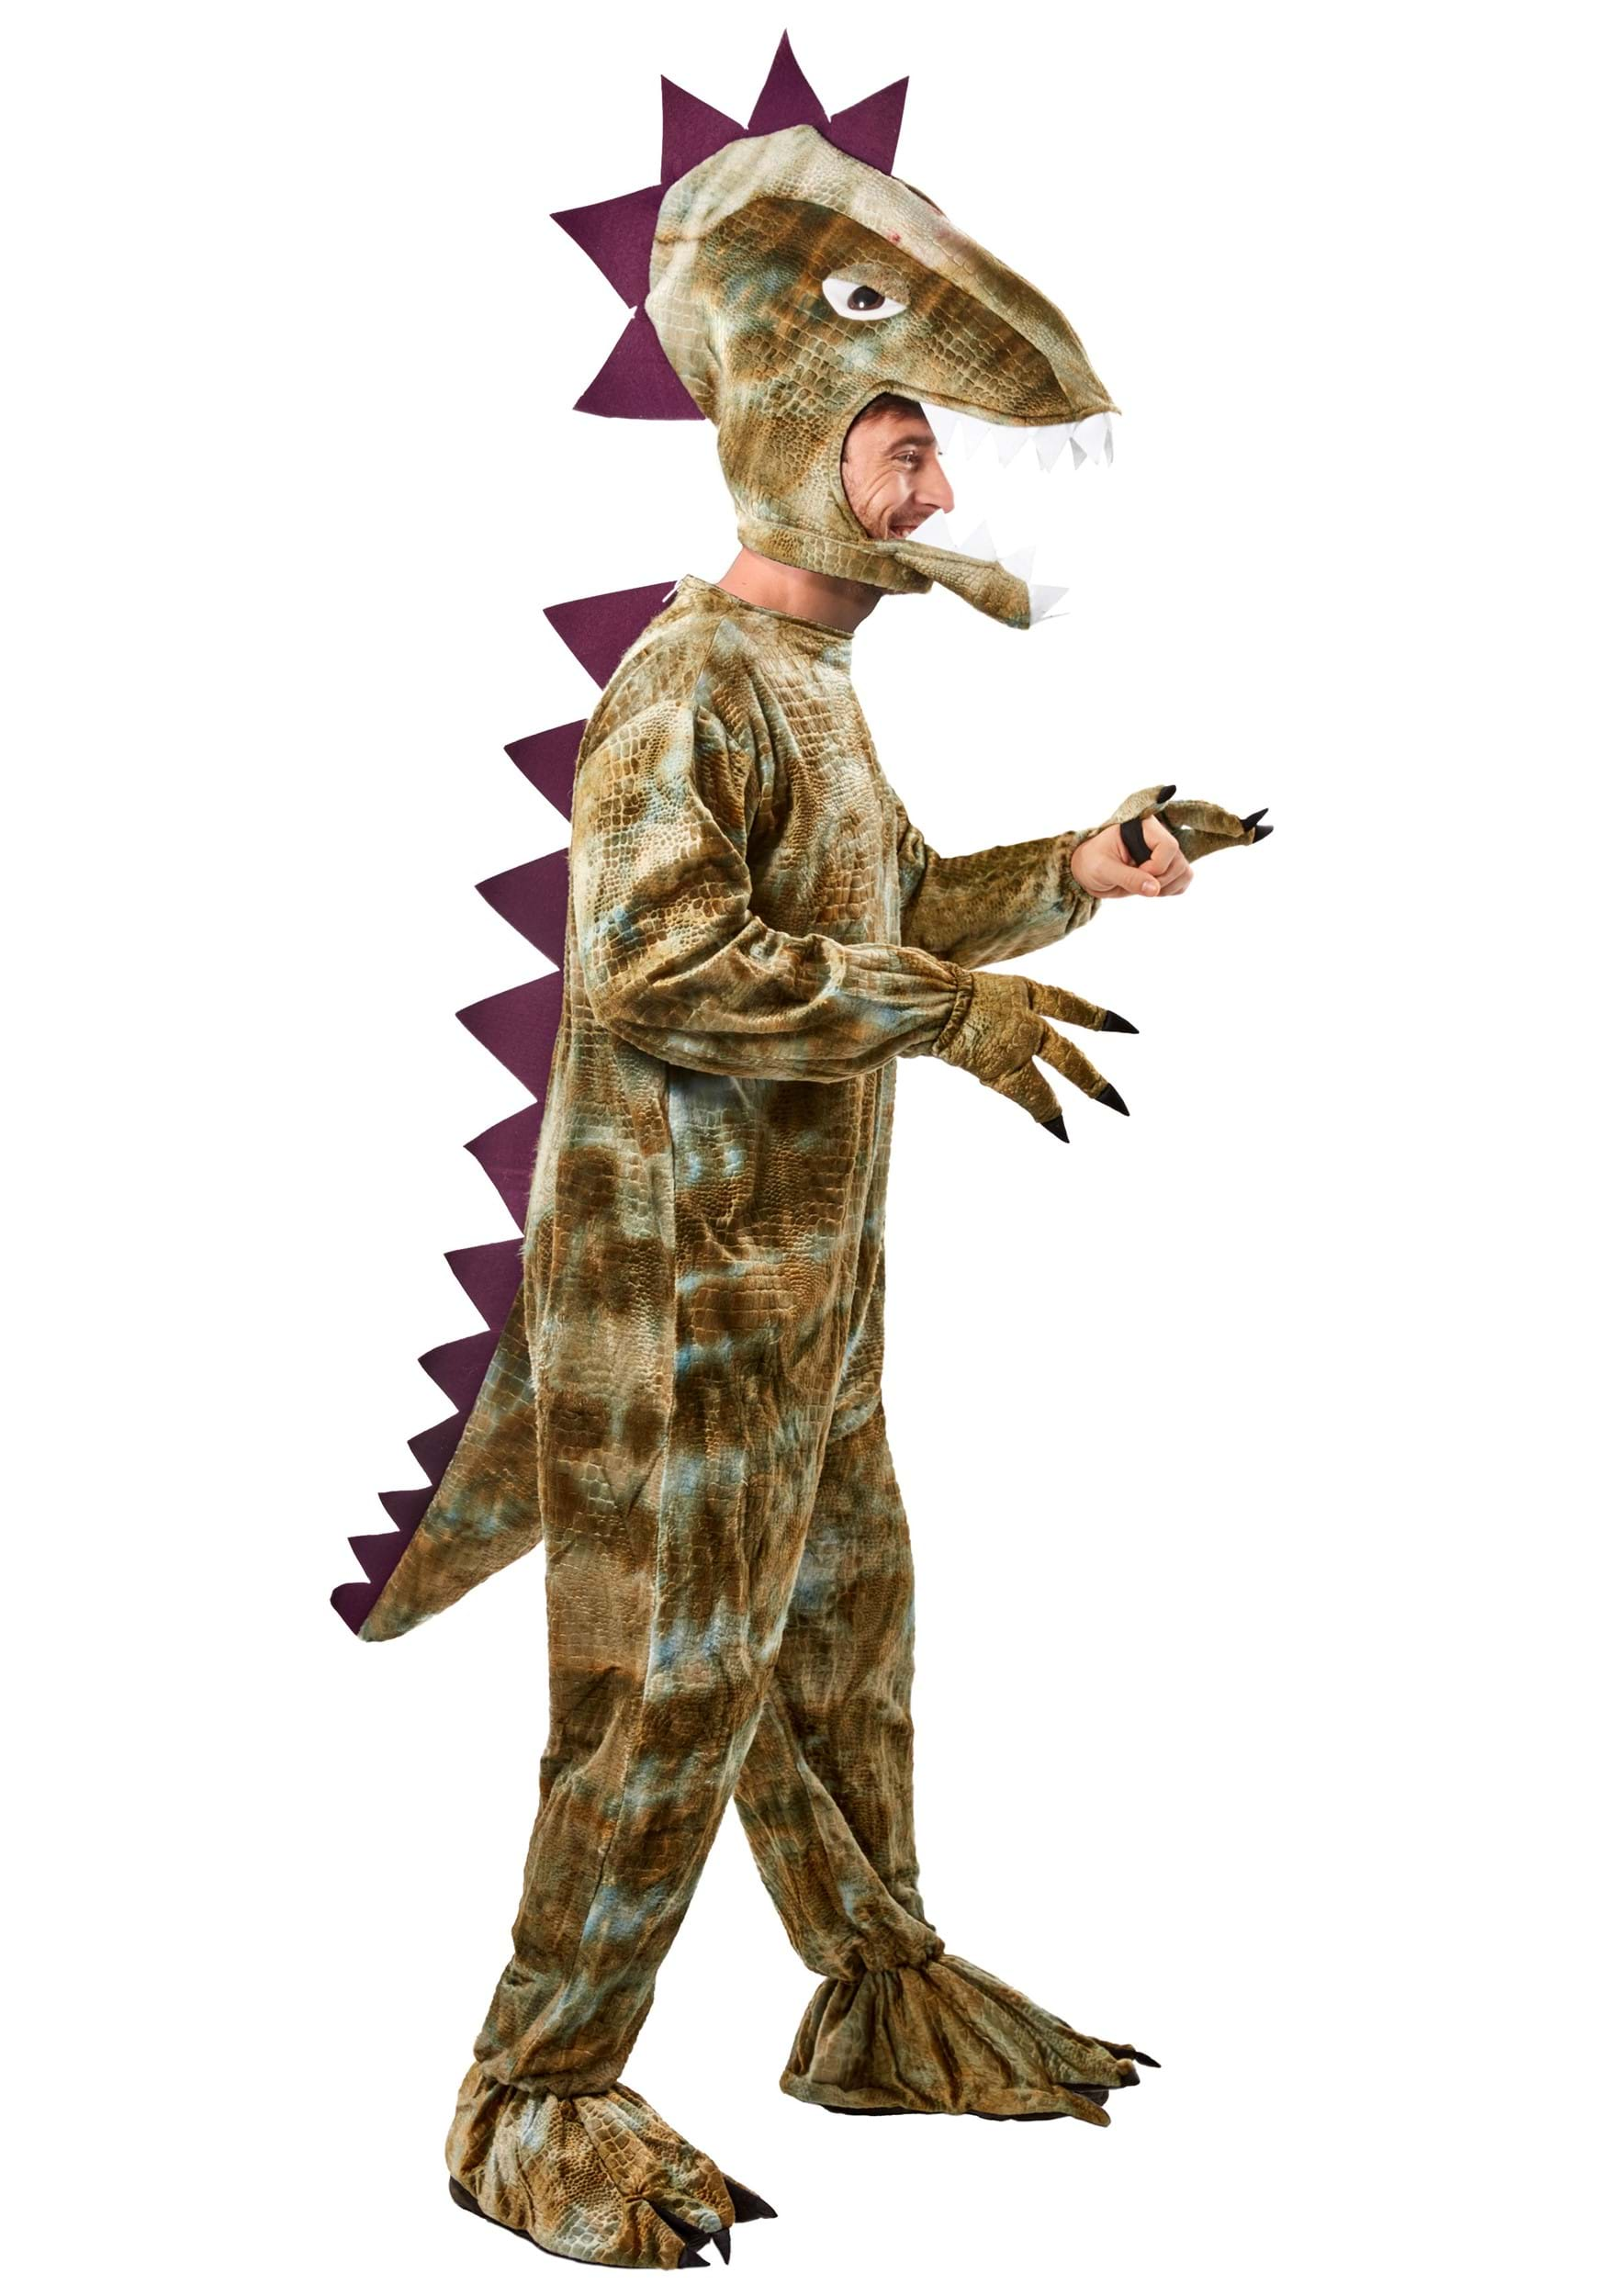 Shop for dinosaur costume online at Target. Free shipping on purchases over $35 and save 5% every day with your Target REDcard.